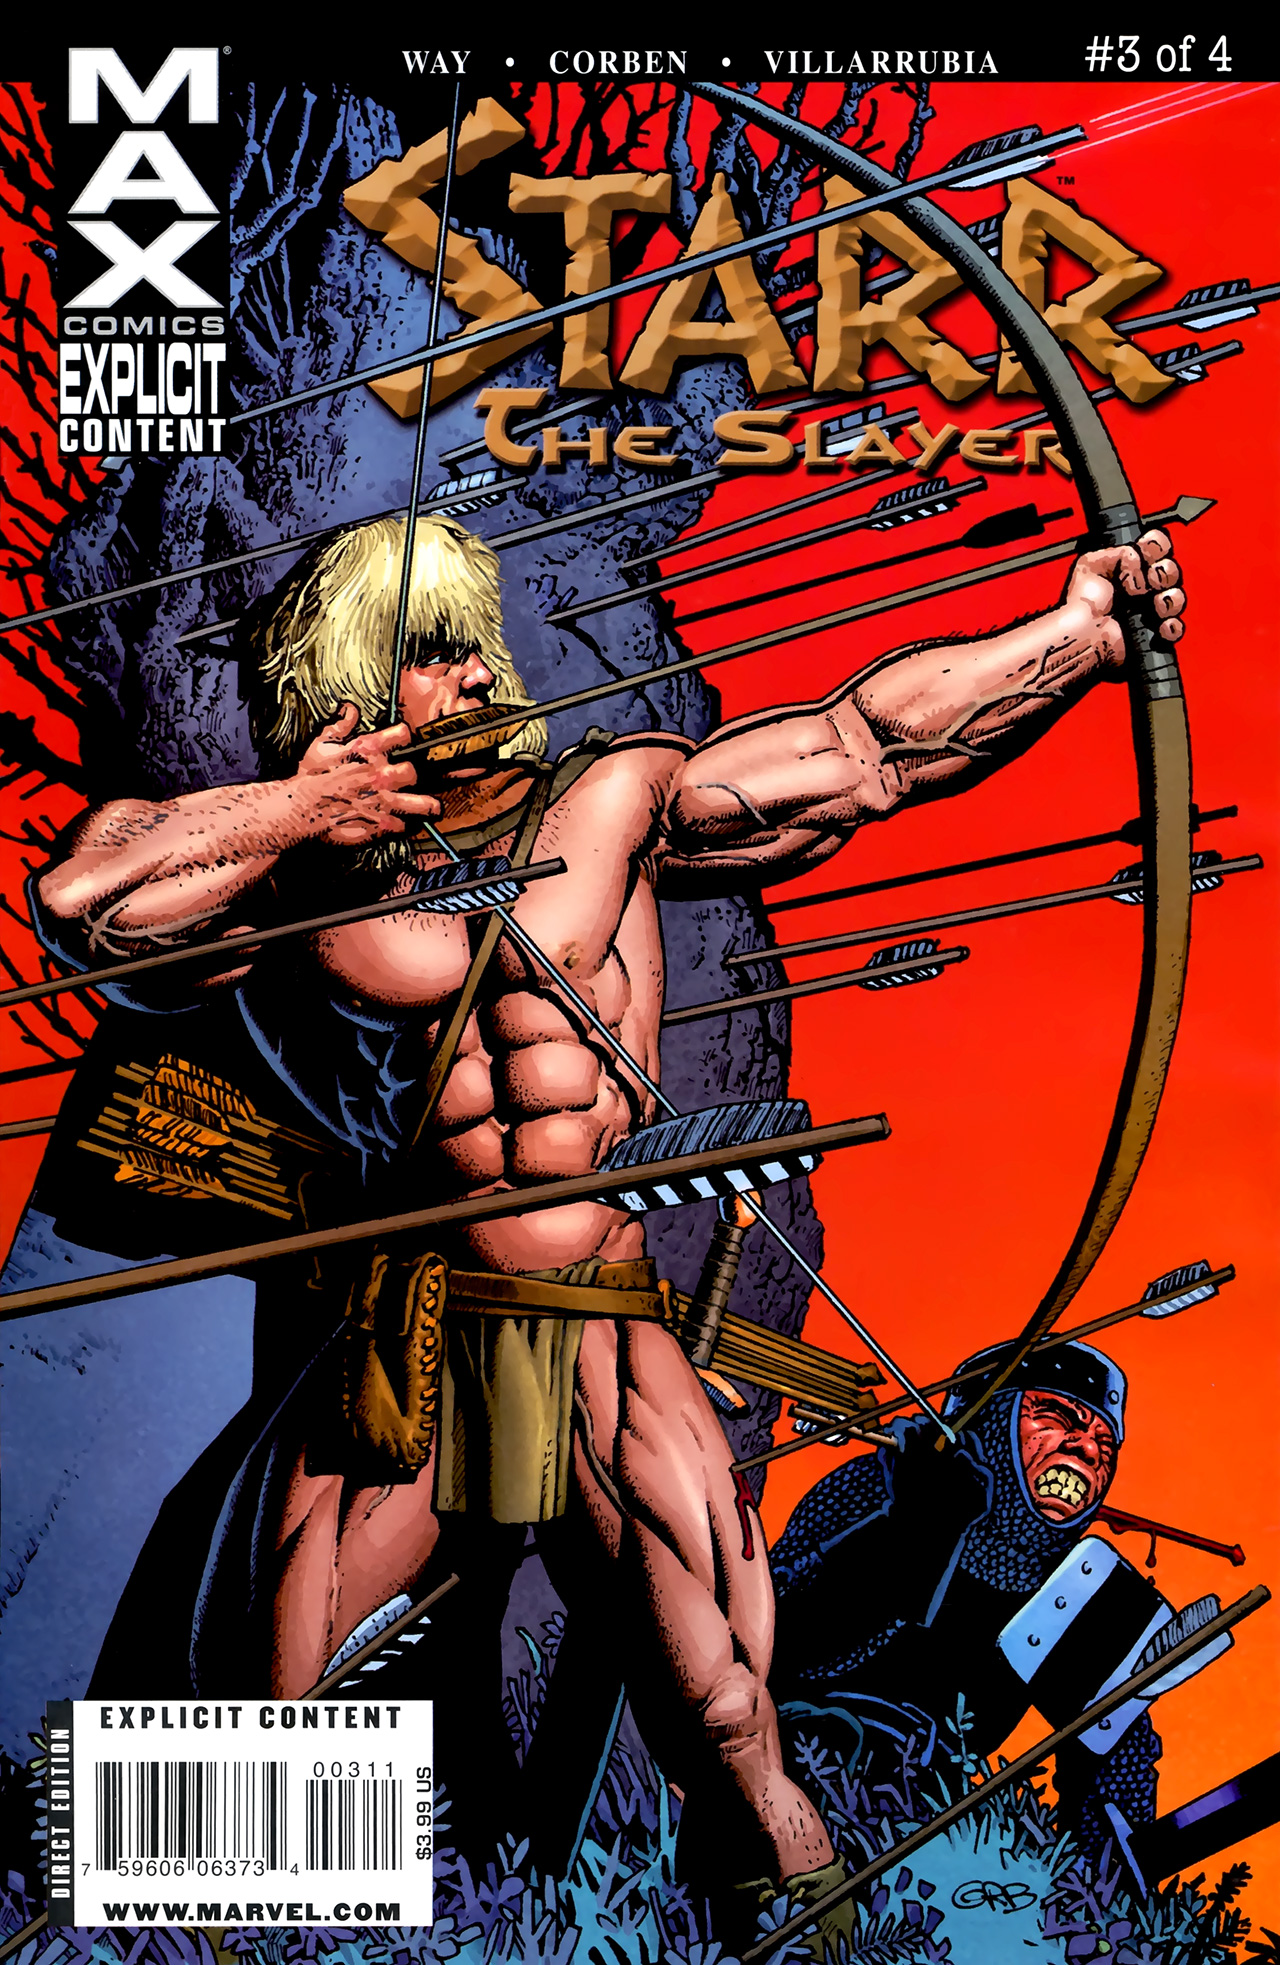 Read online Starr the Slayer comic -  Issue #3 - 1